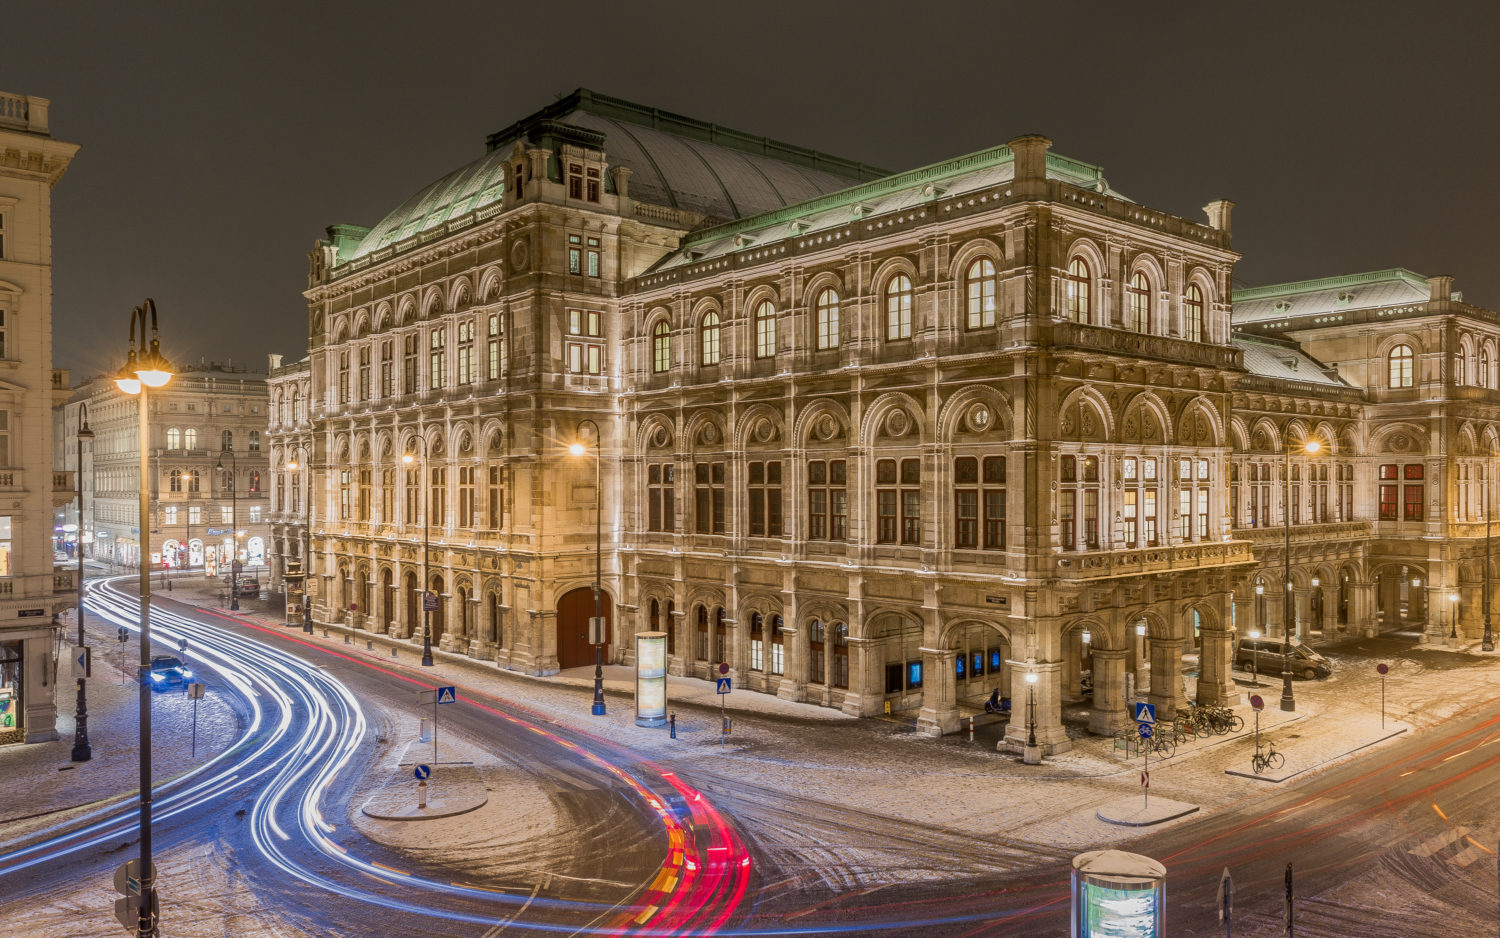 Vienna state opera in the winter night with traffic surrounding it